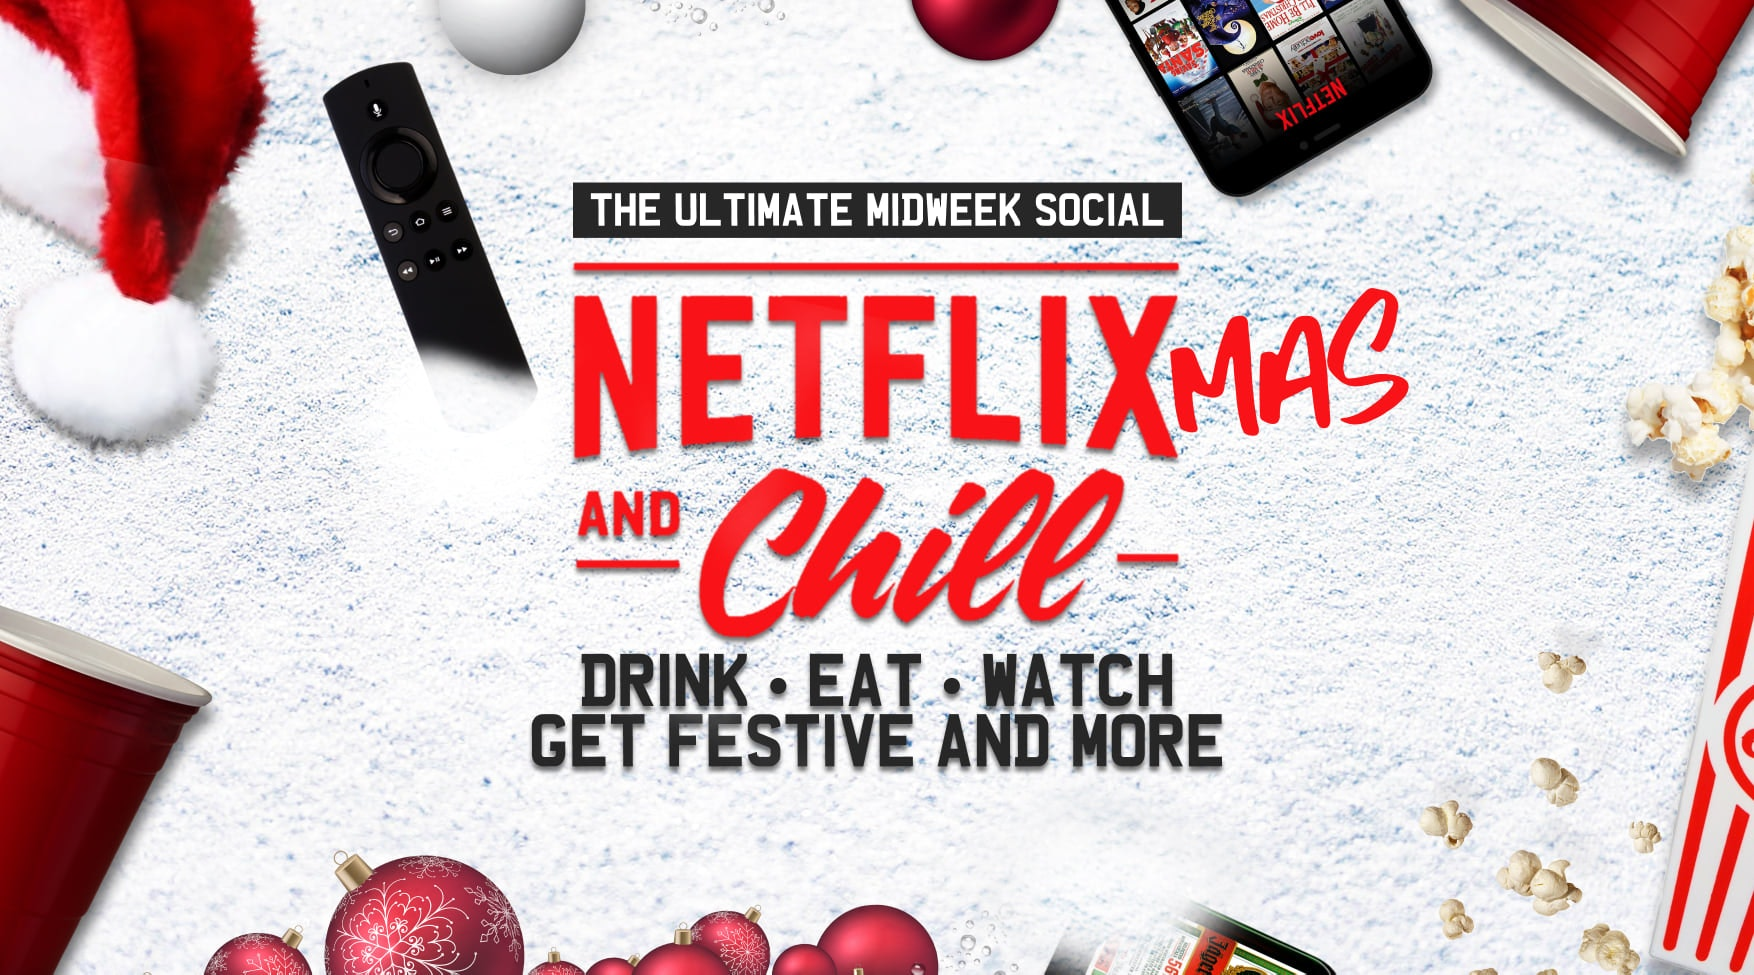 Netflix & Chill 👀 CHRISTMAS MOVIE NIGHT 🎄 TICKETS OUT NOW ❄️